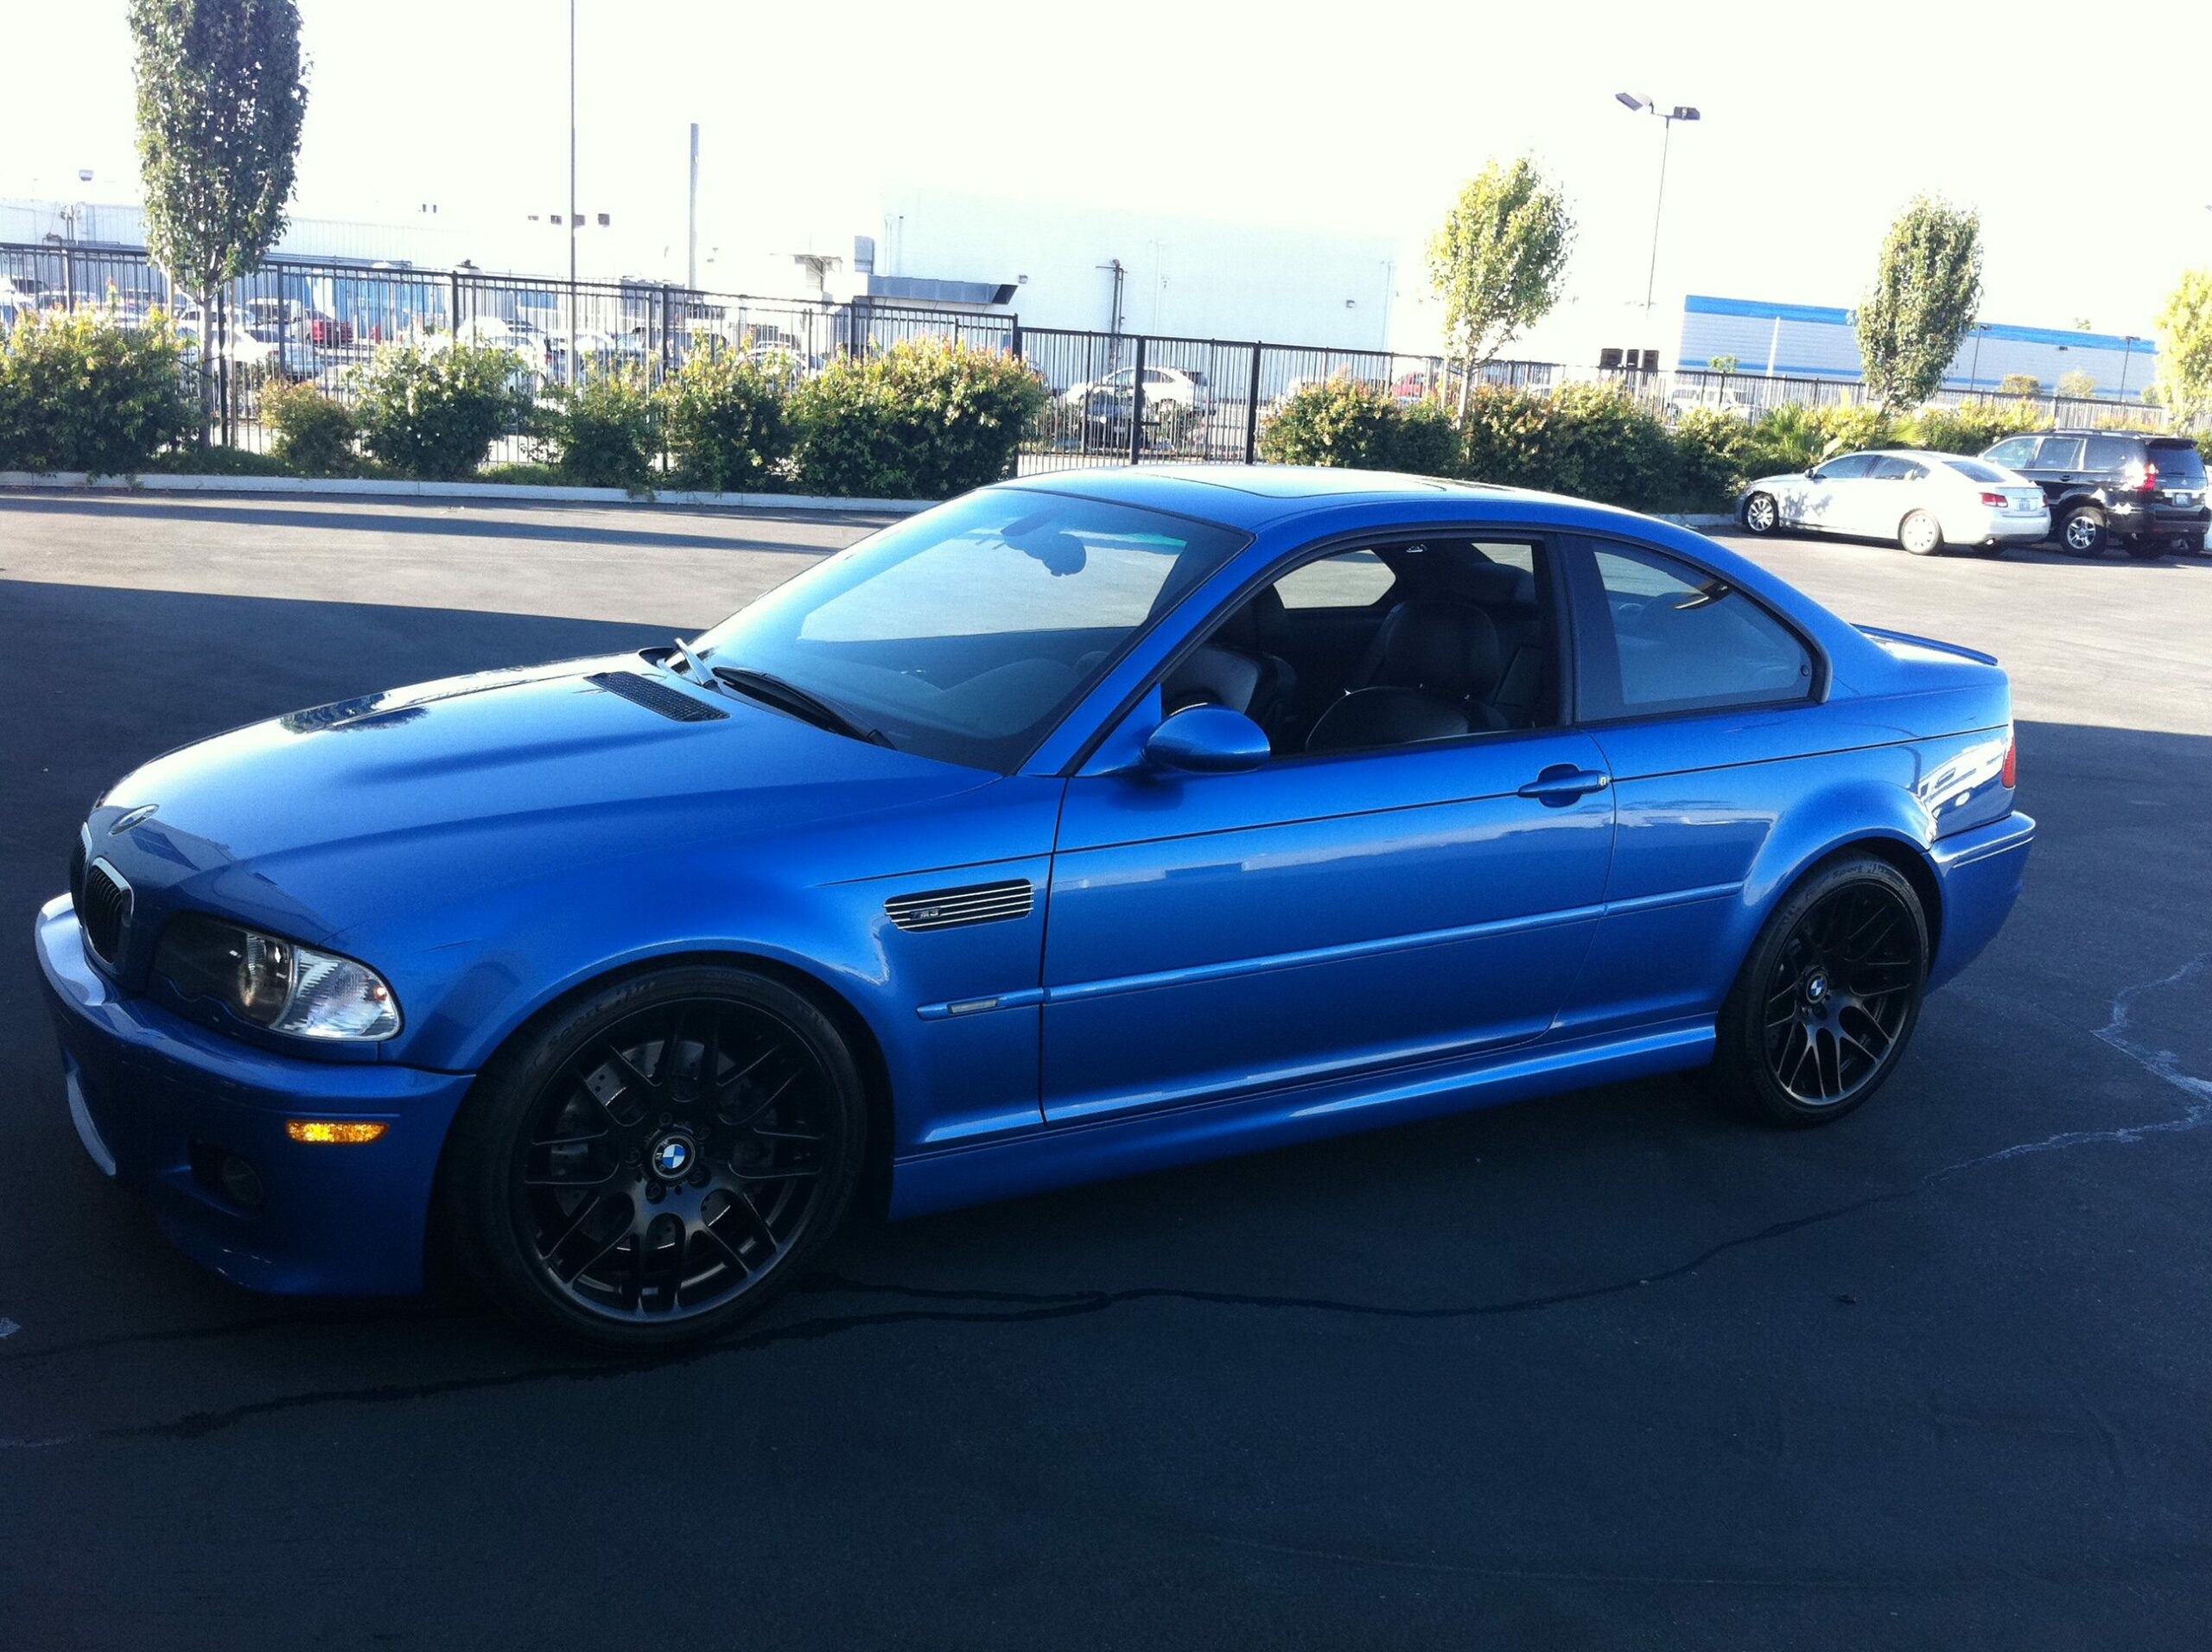 Rare 2005 Bmw Dinan S3 M3 Garage Dream Auctions